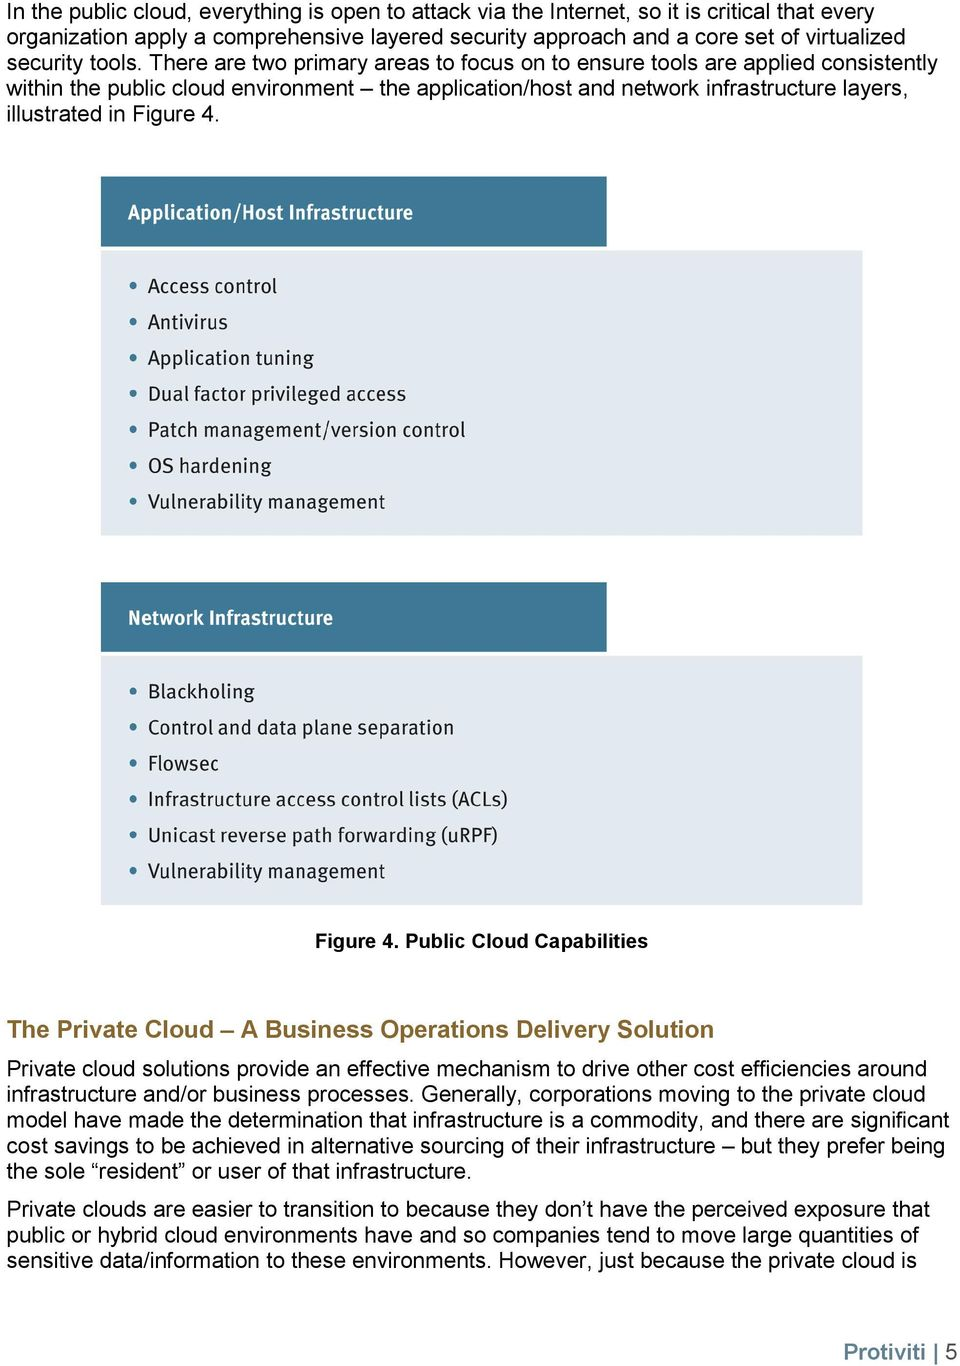 There are two primary areas to focus on to ensure tools are applied consistently within the public cloud environment the application/host and network infrastructure layers, illustrated in Figure 4.